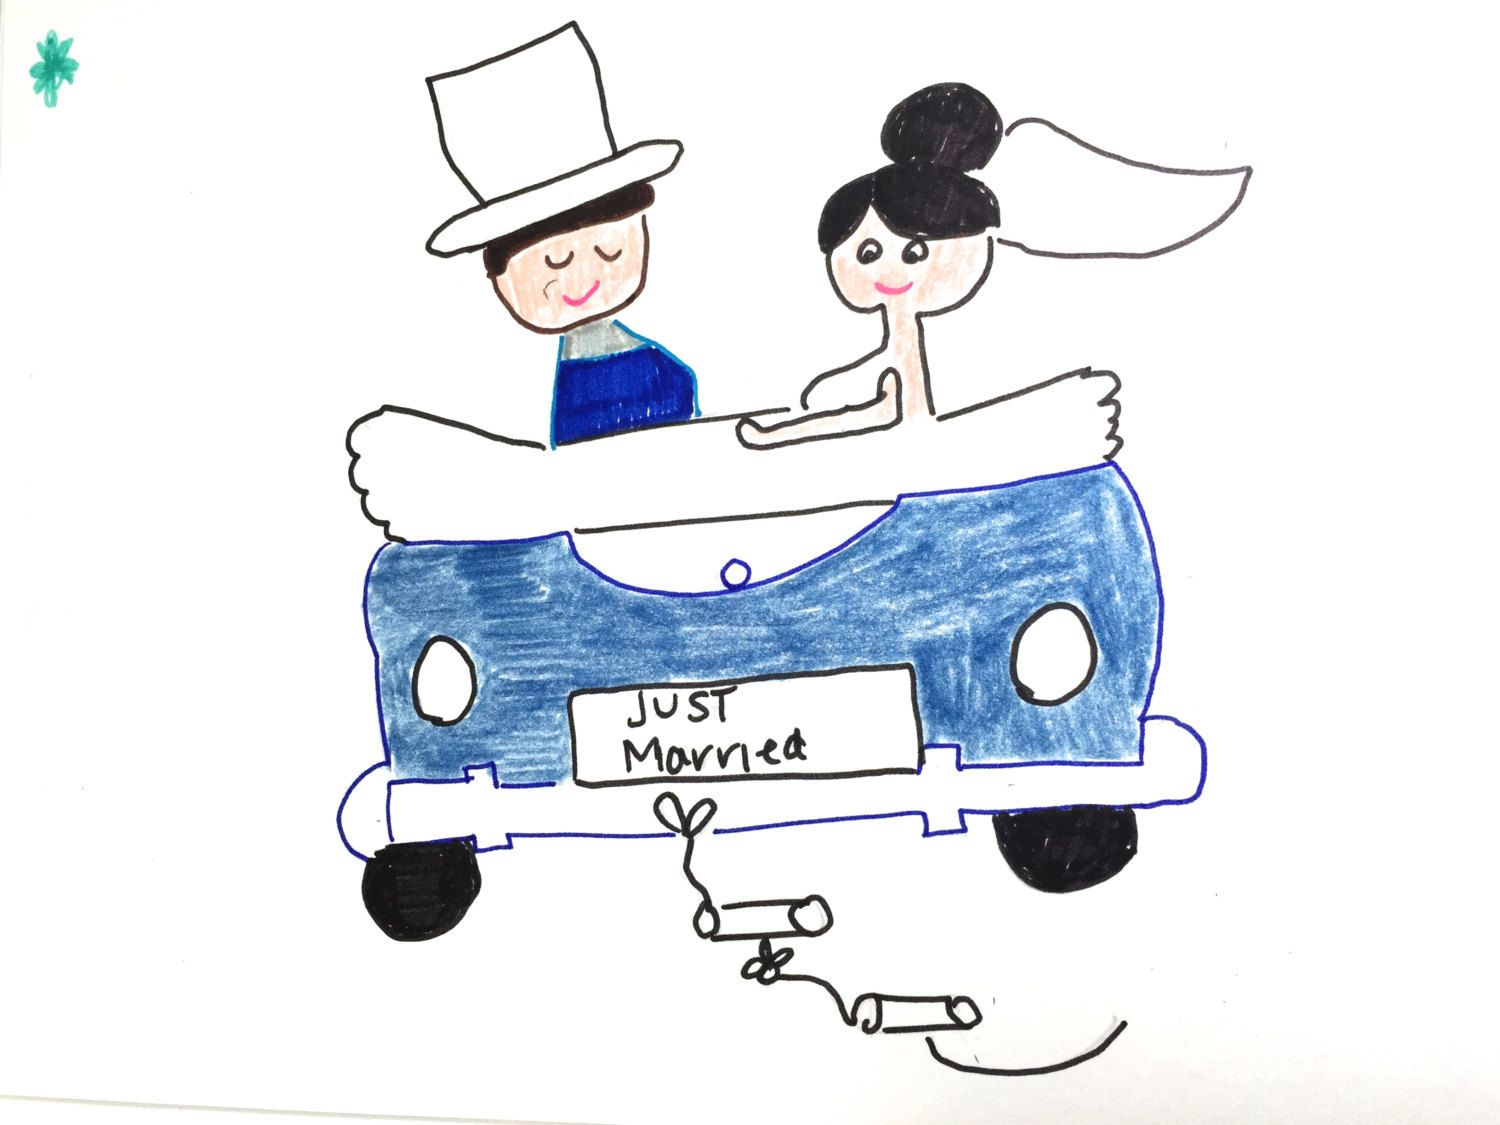 Happily newlywed married couple congratulations card blue white happily newlywed married couple congratulations card blue white black lilymoonsigns blue white black newly married engagement kristyandbryce Image collections